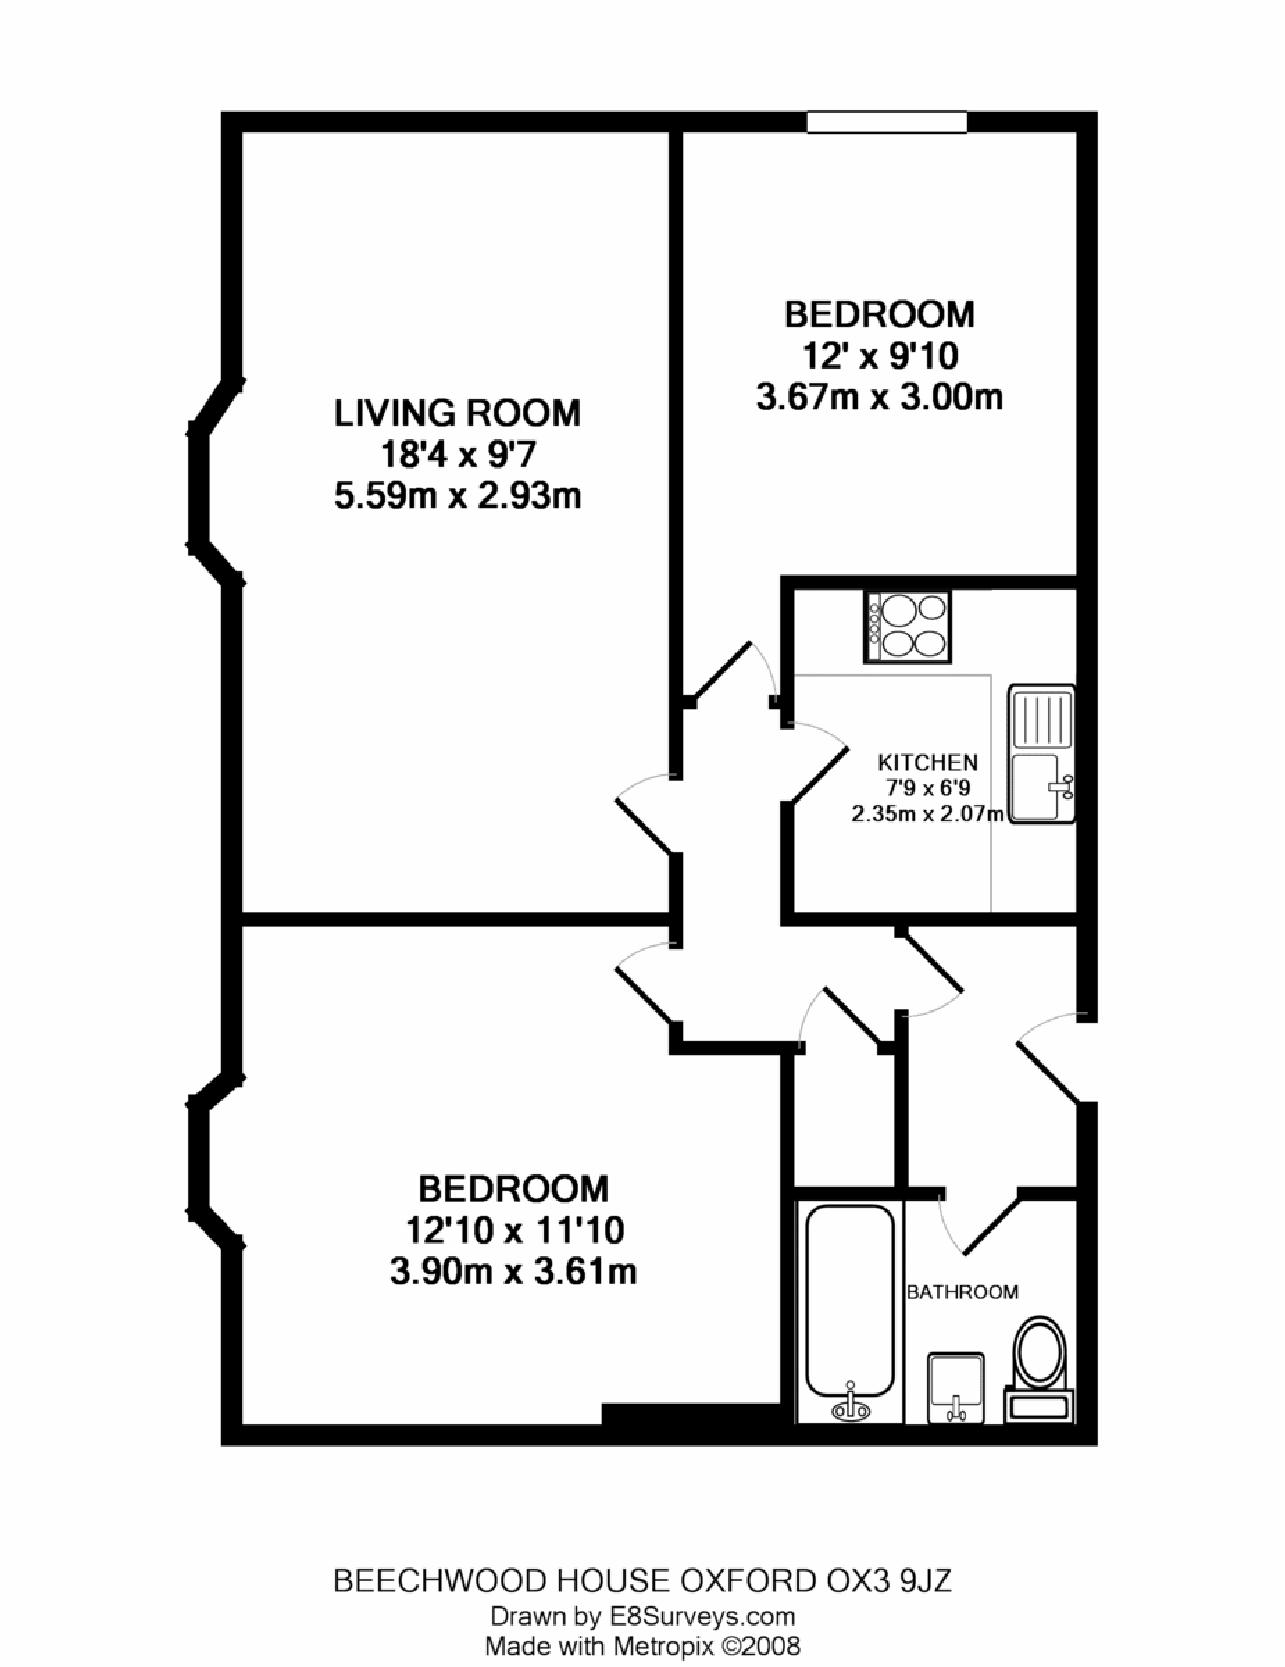 Beechwood house headington ox3 ref 25010 oxford for Building plan for two bedroom flat